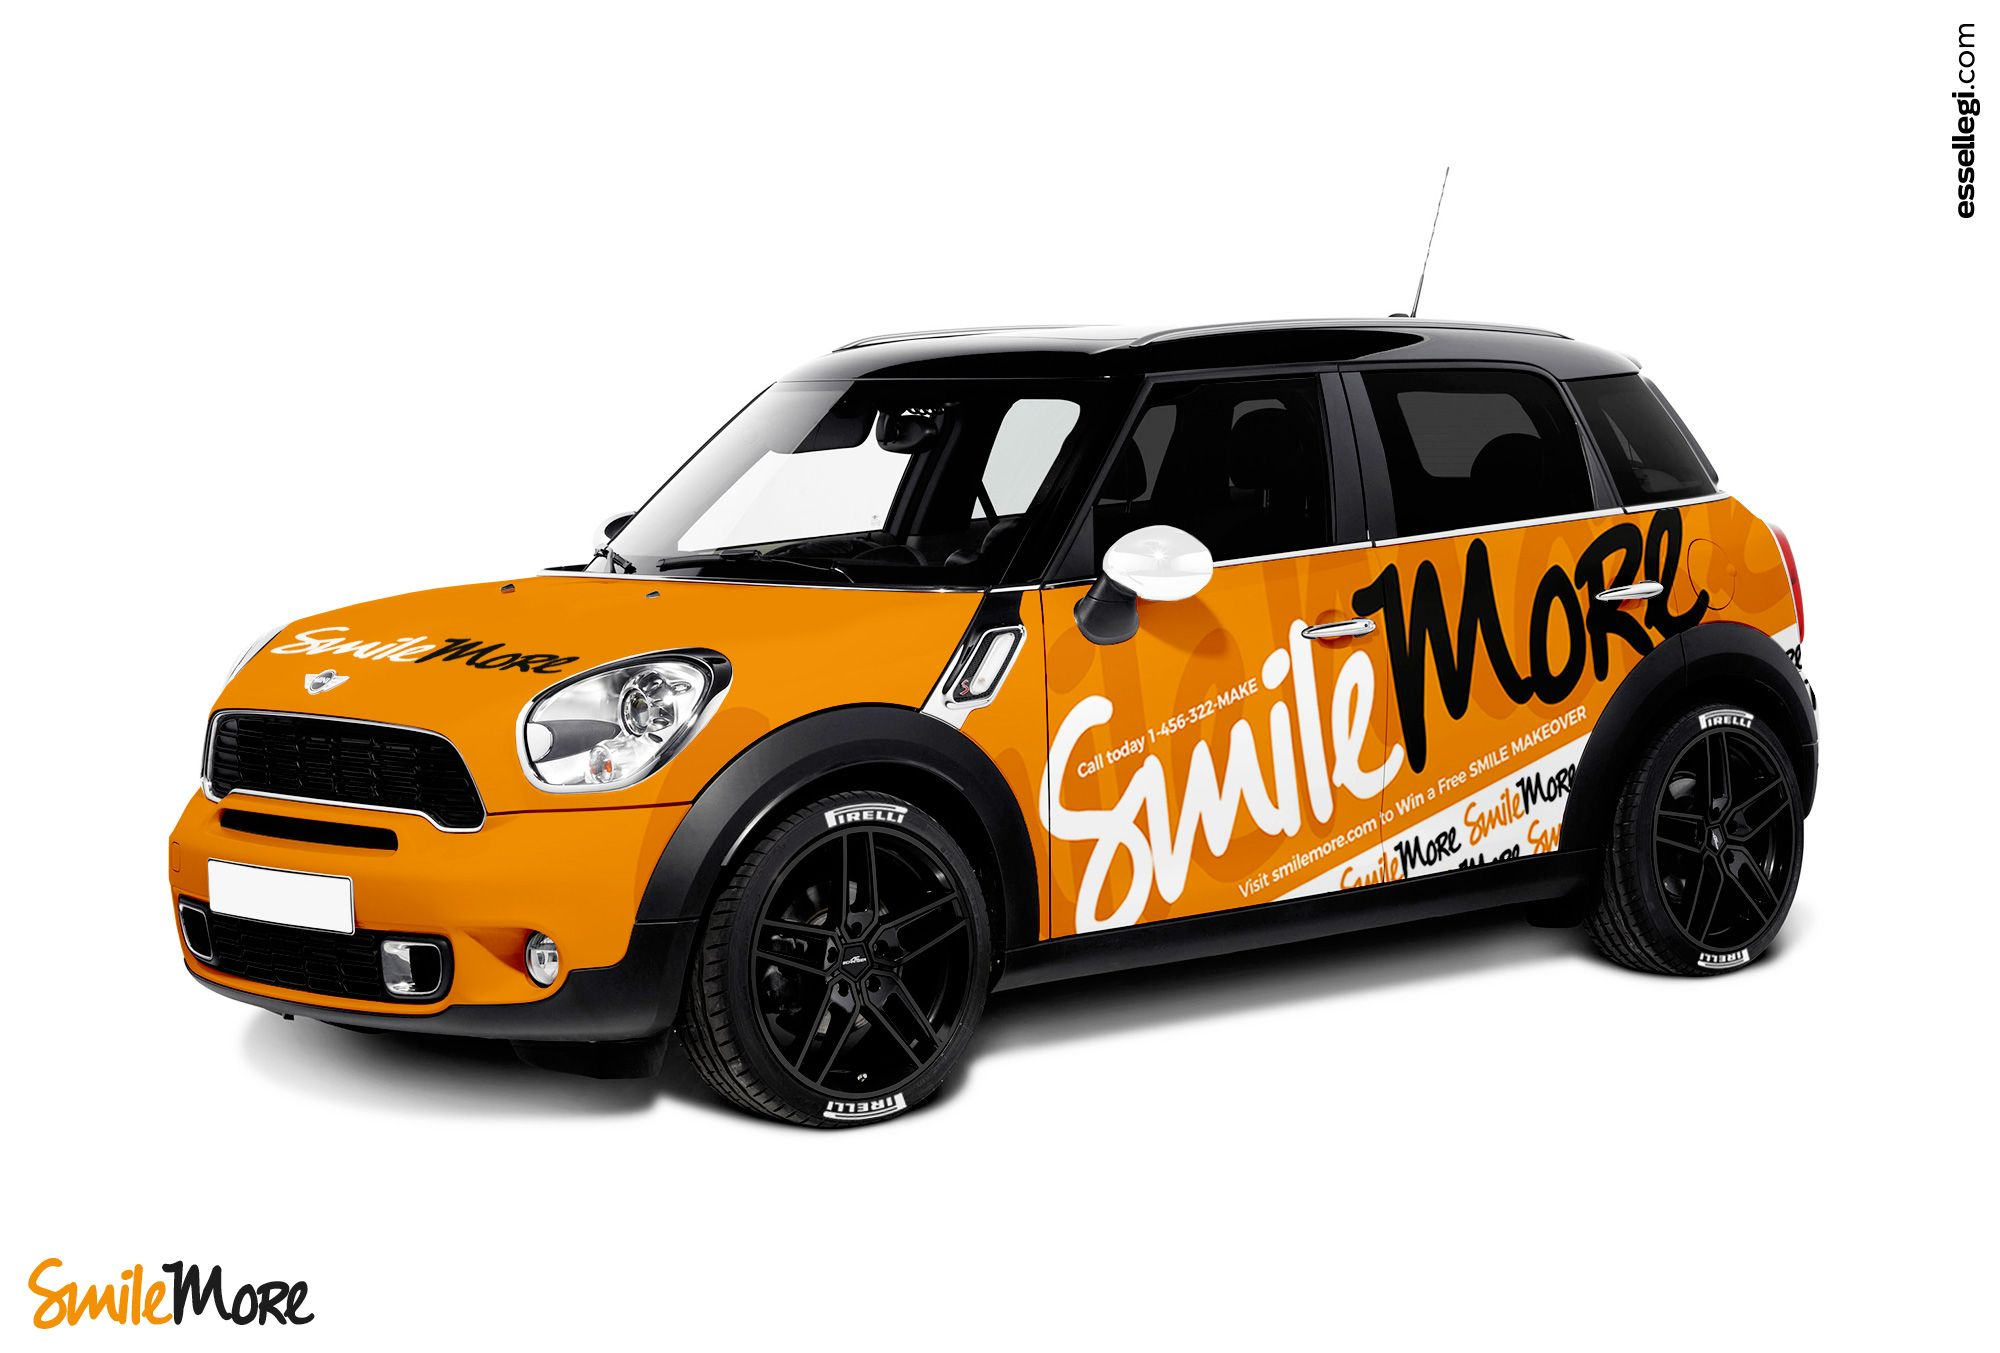 Mini Cooper Countryman Car Wrap Design By Essellegi Car Signs - Car sticker designimpressive wrap decal design for car car design